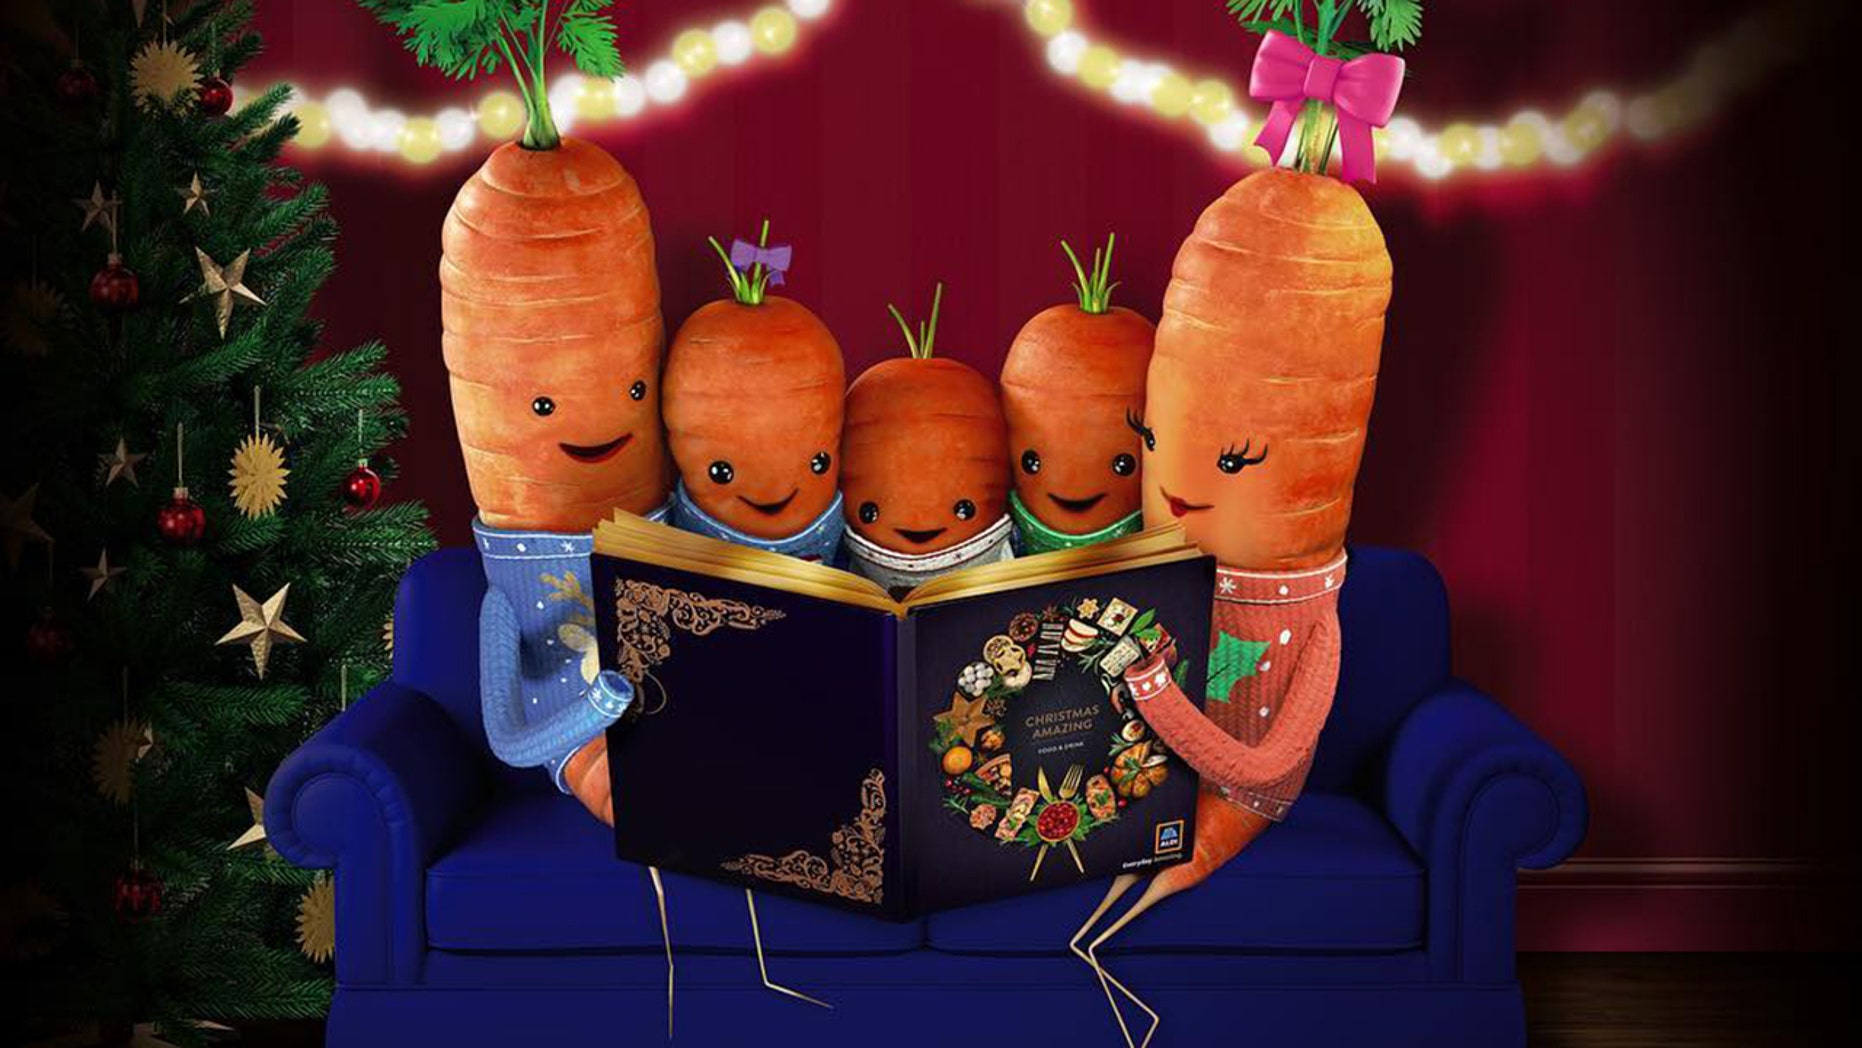 Kevin the Carrot and his whole family are the hit toy of the season.